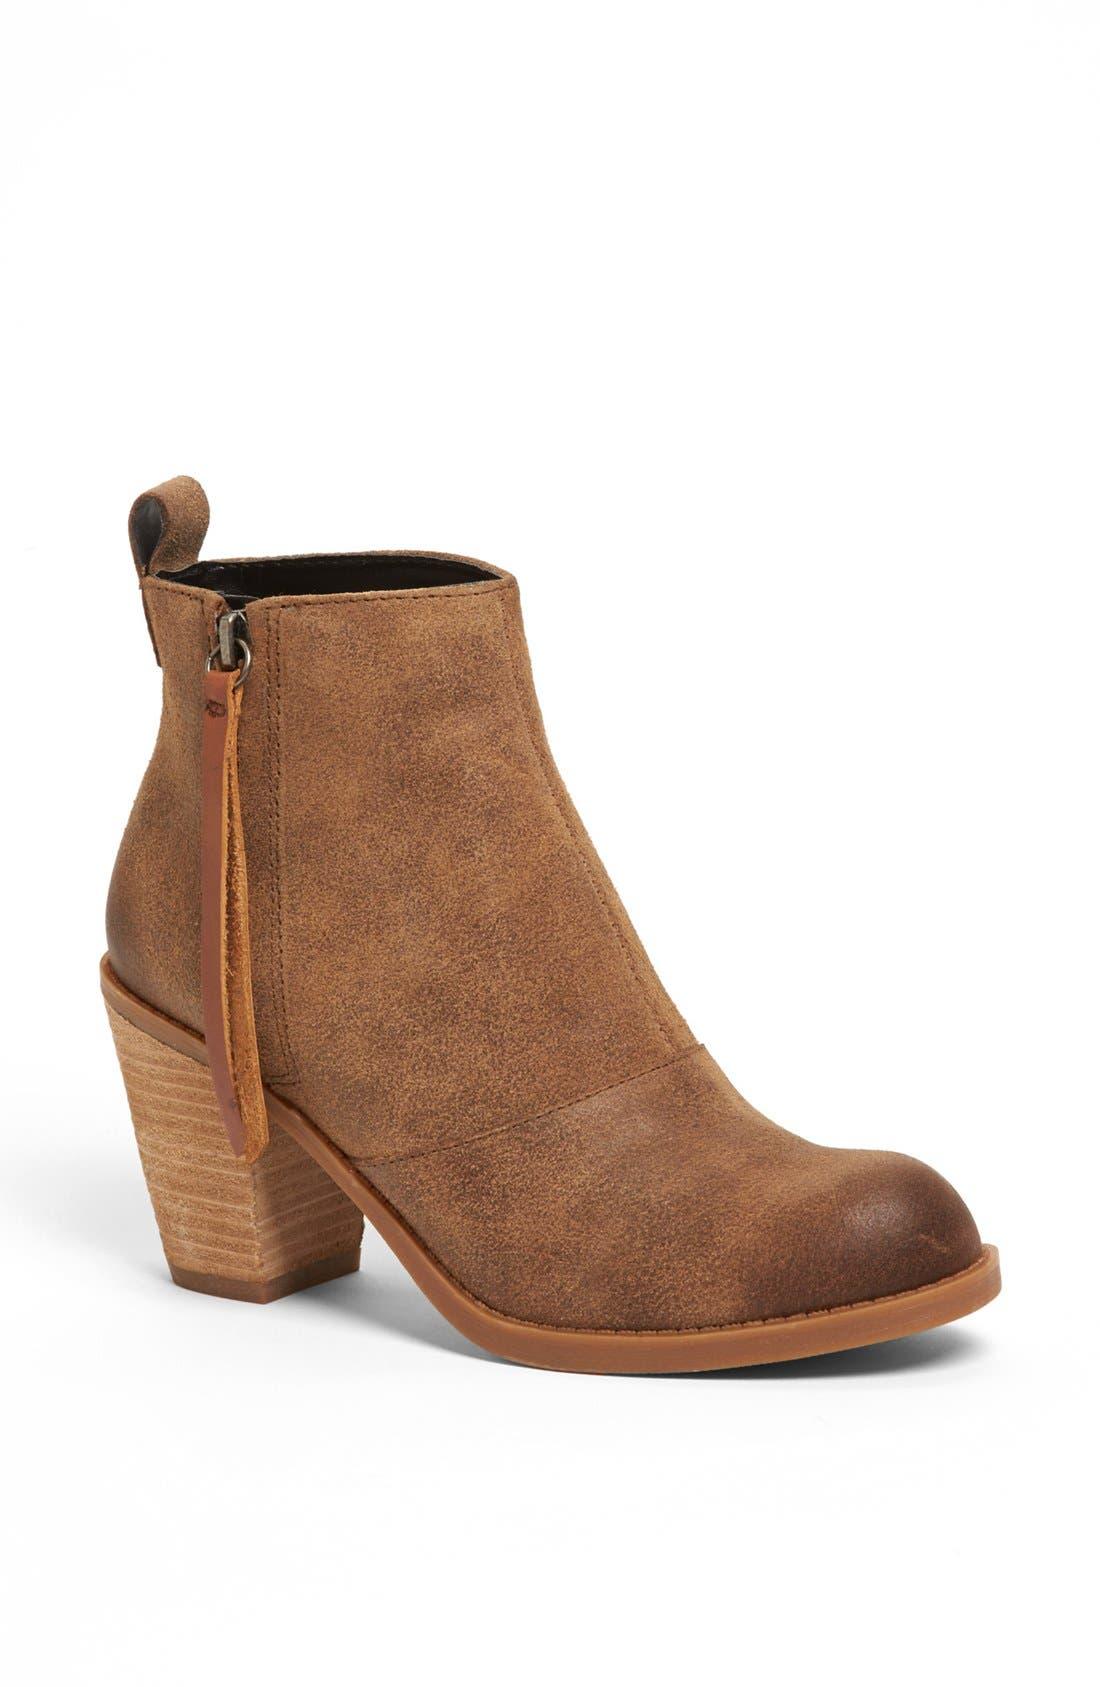 Main Image - DV by Dolce Vita 'Joust' Bootie